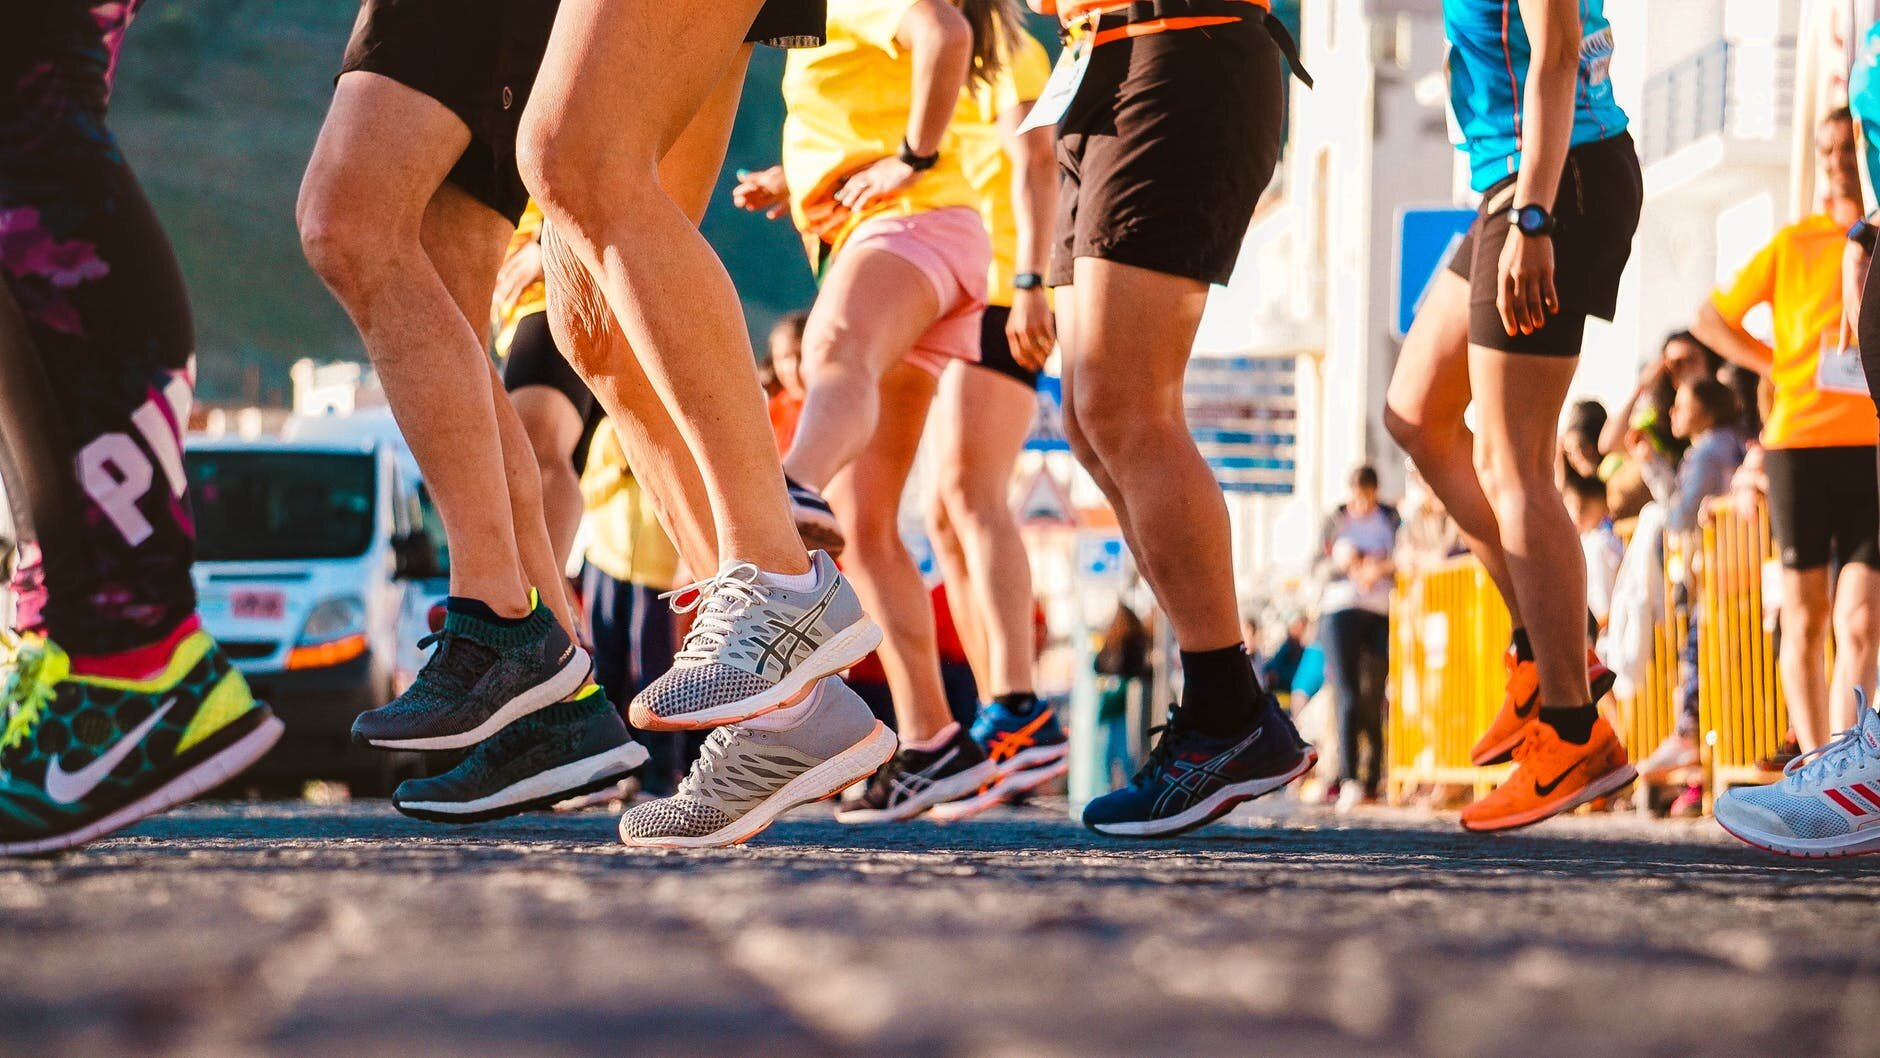 Top 4 Best Running Shoe Brand You Can Choose From